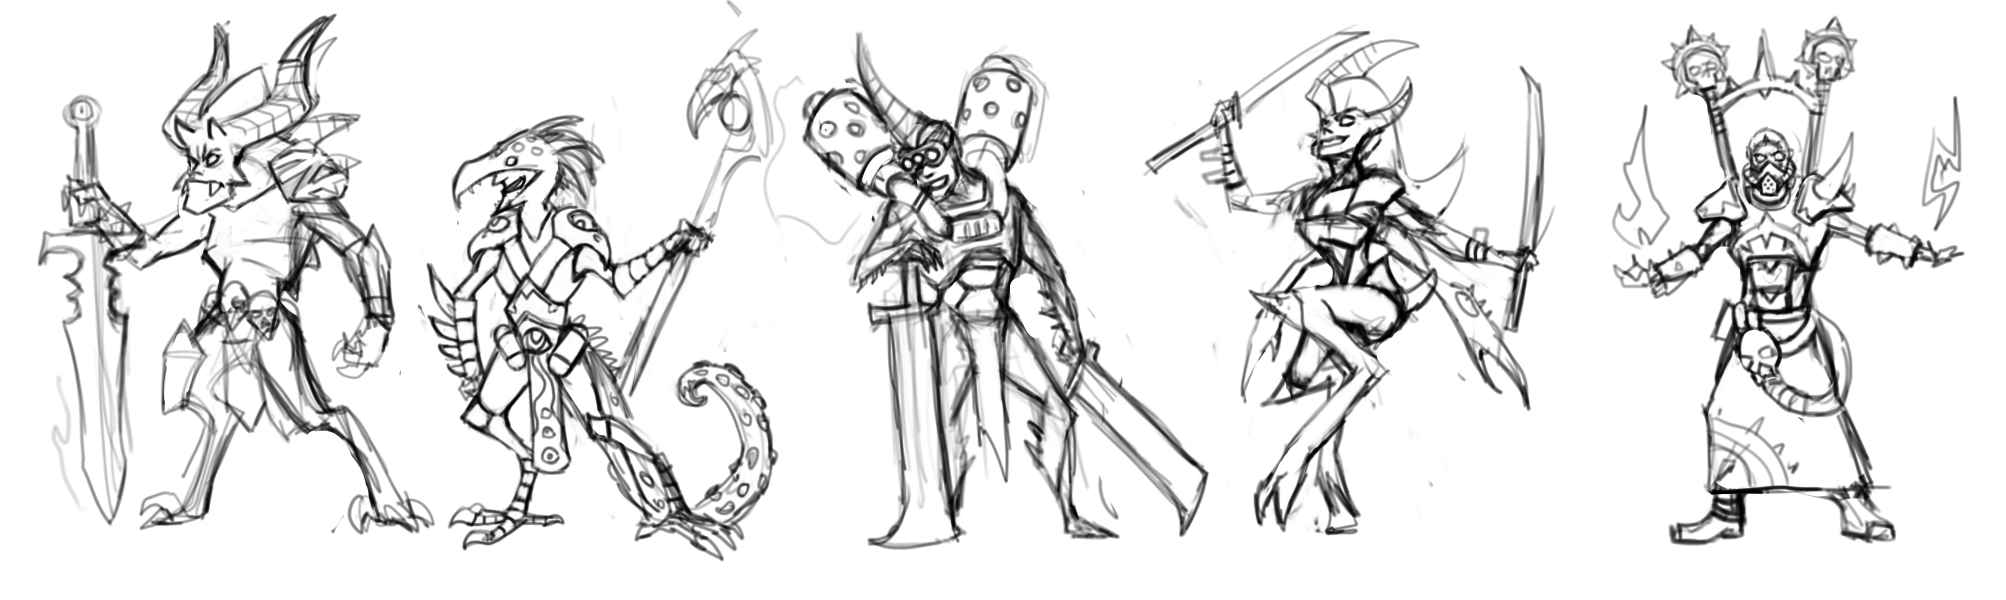 Chaos United rough concepts by TD-Vice